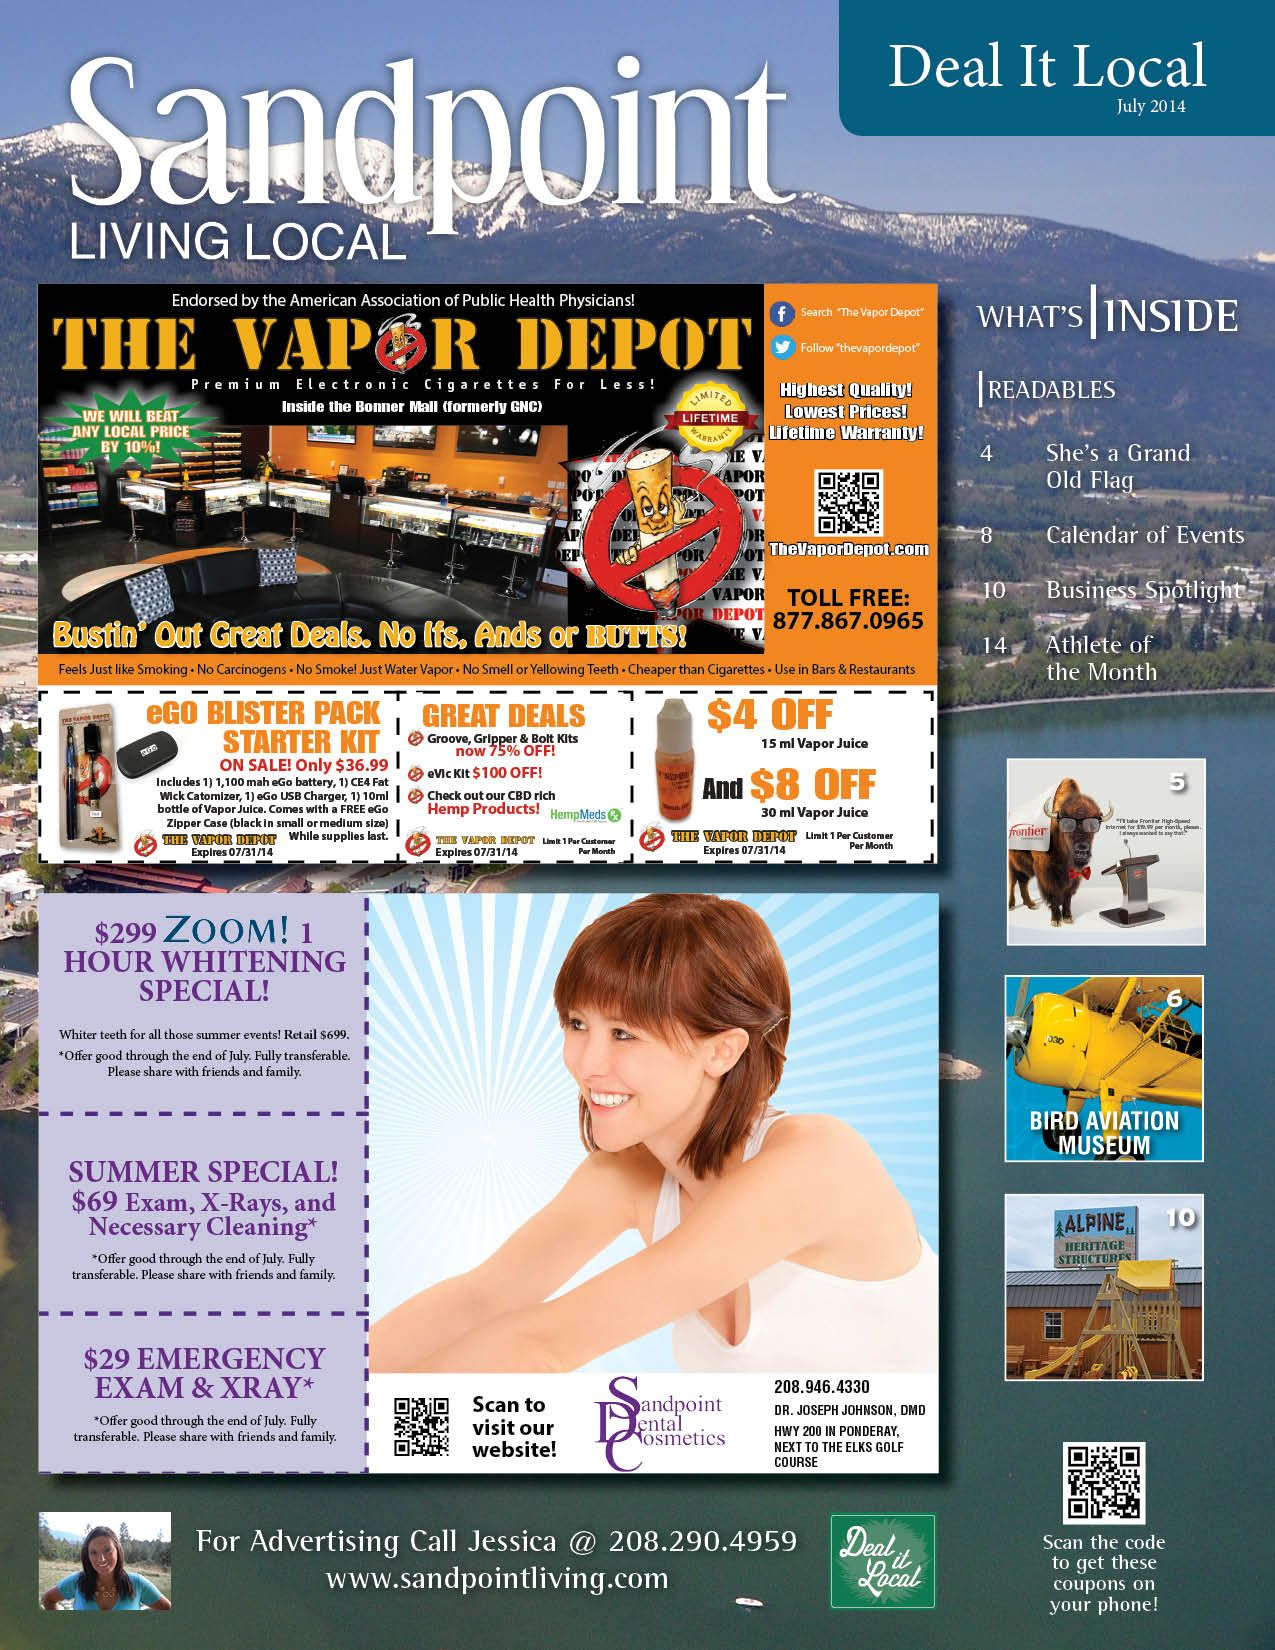 June 2014 Sandpoint Deal It Local Magazine | Sandpoint, Idaho | www.sandpointliving.com